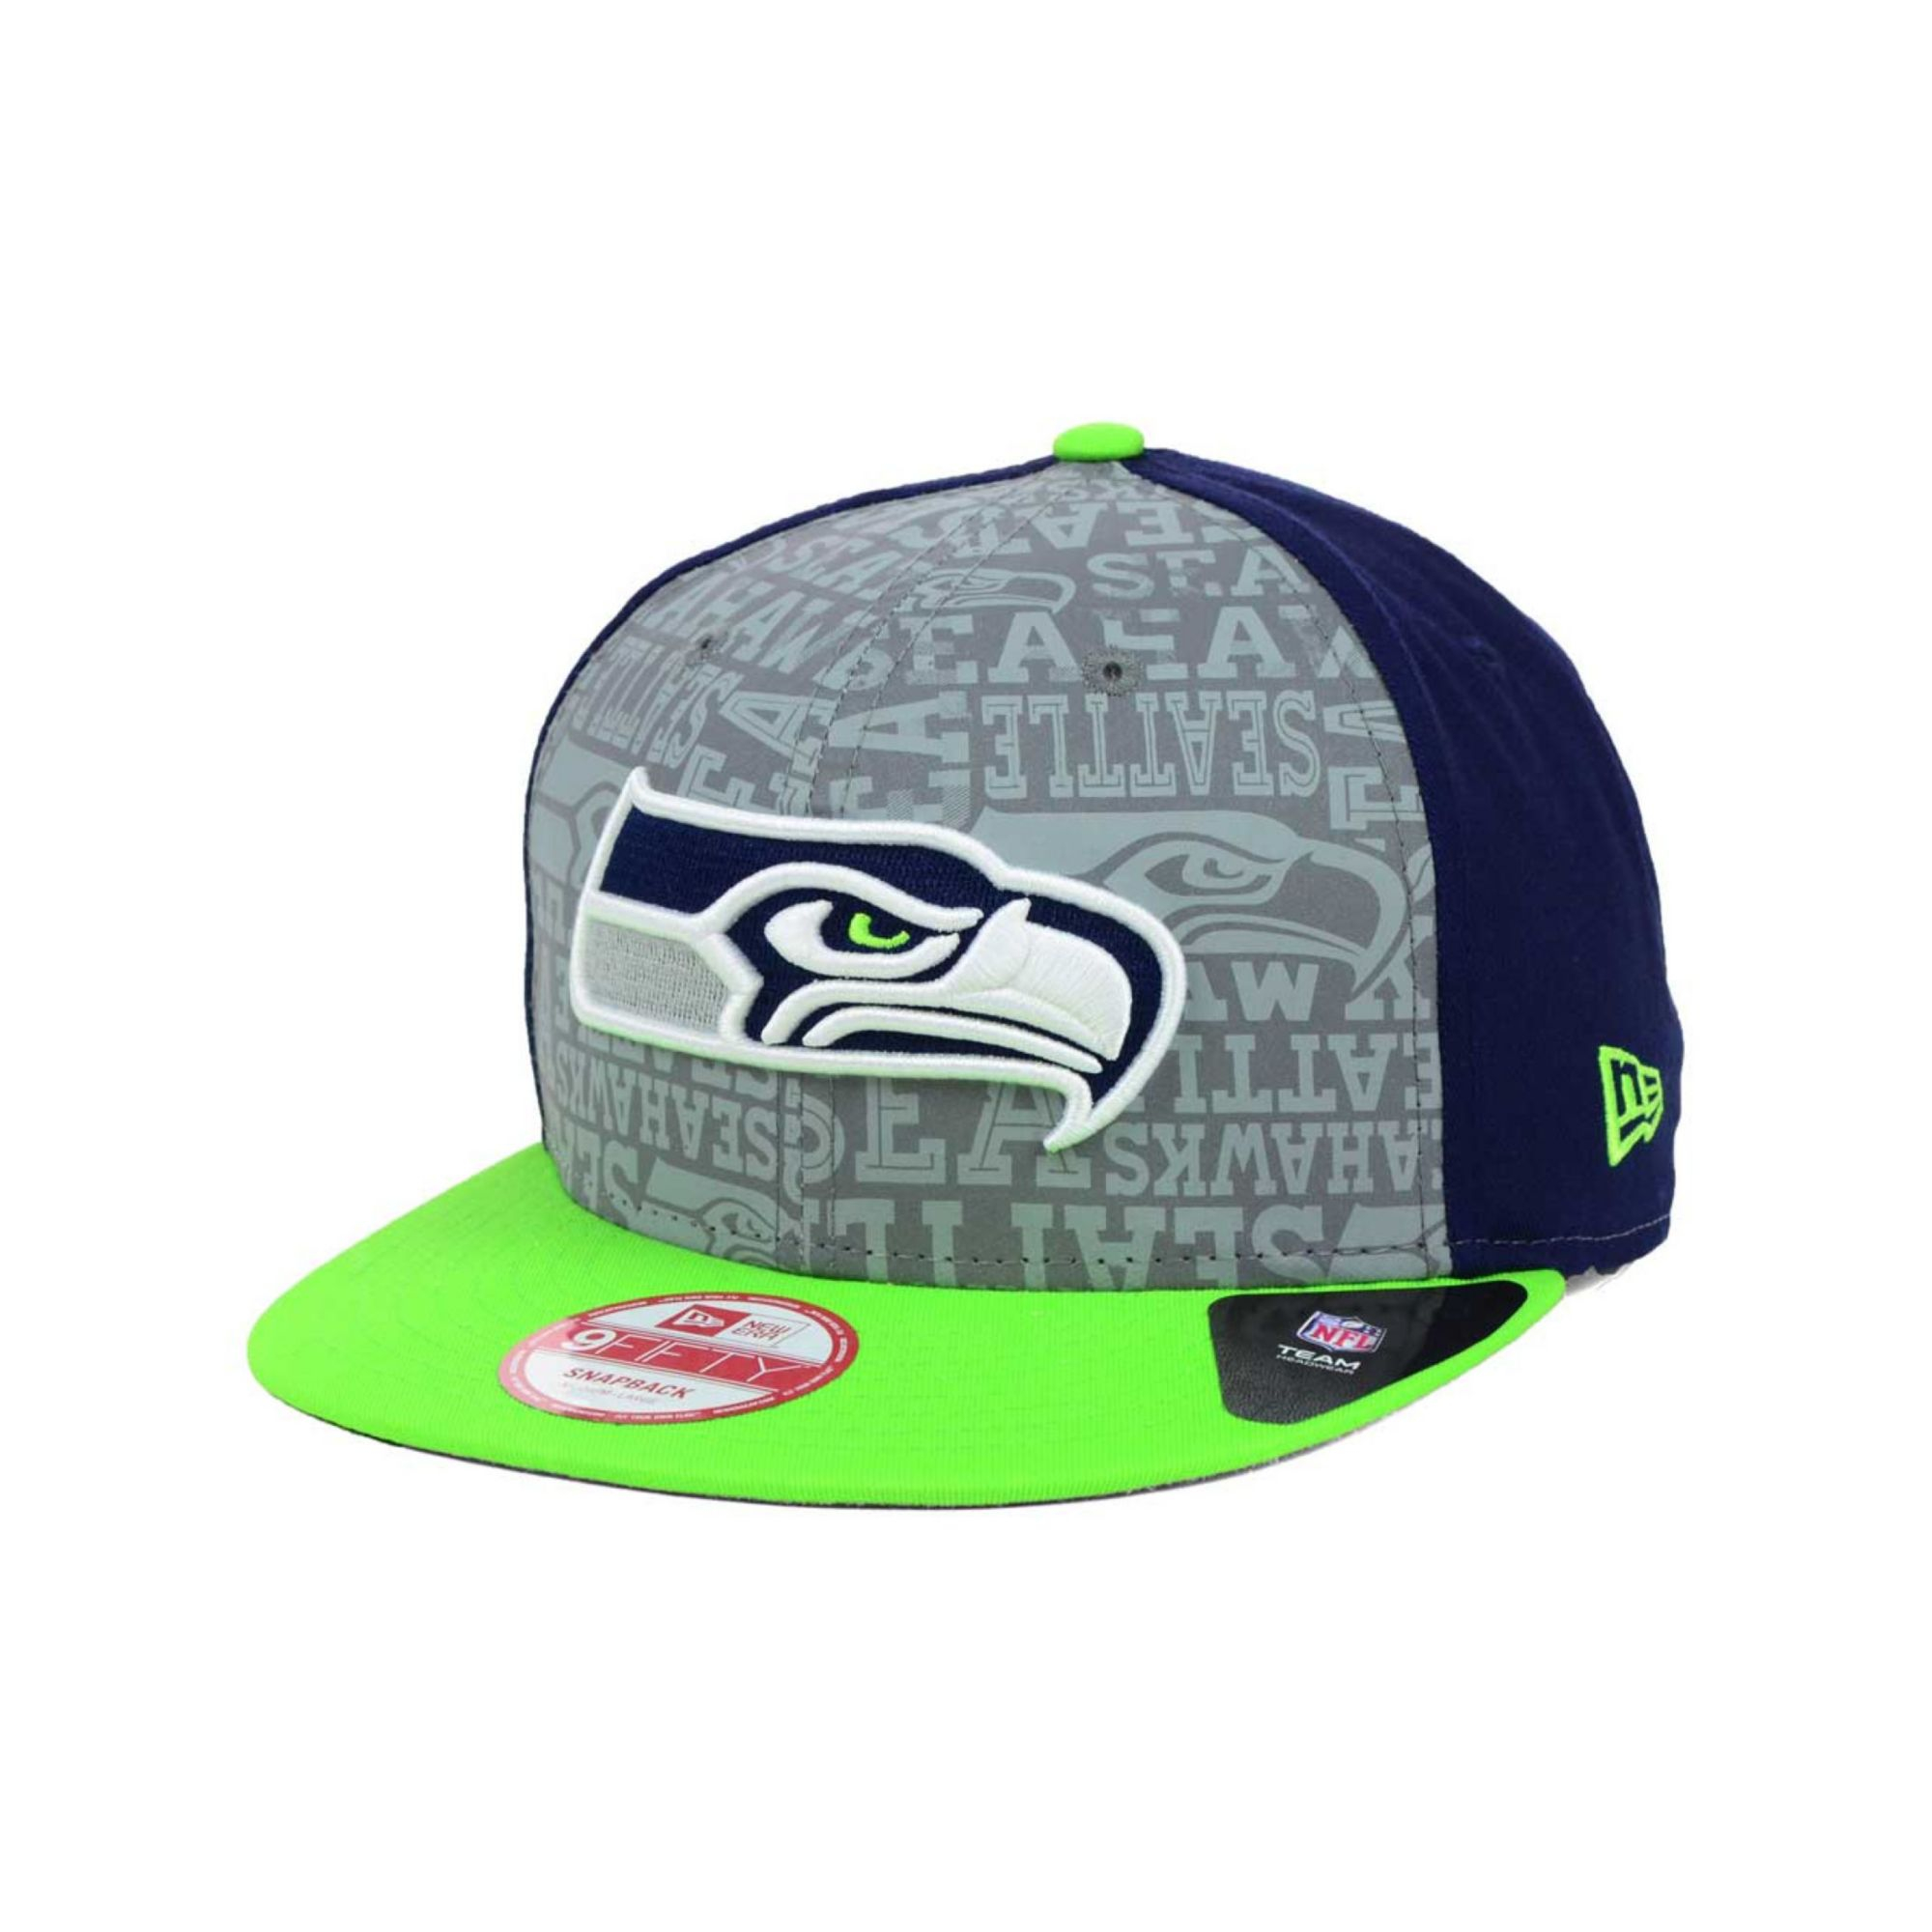 seattle seahawks snapback blue. Black Bedroom Furniture Sets. Home Design Ideas